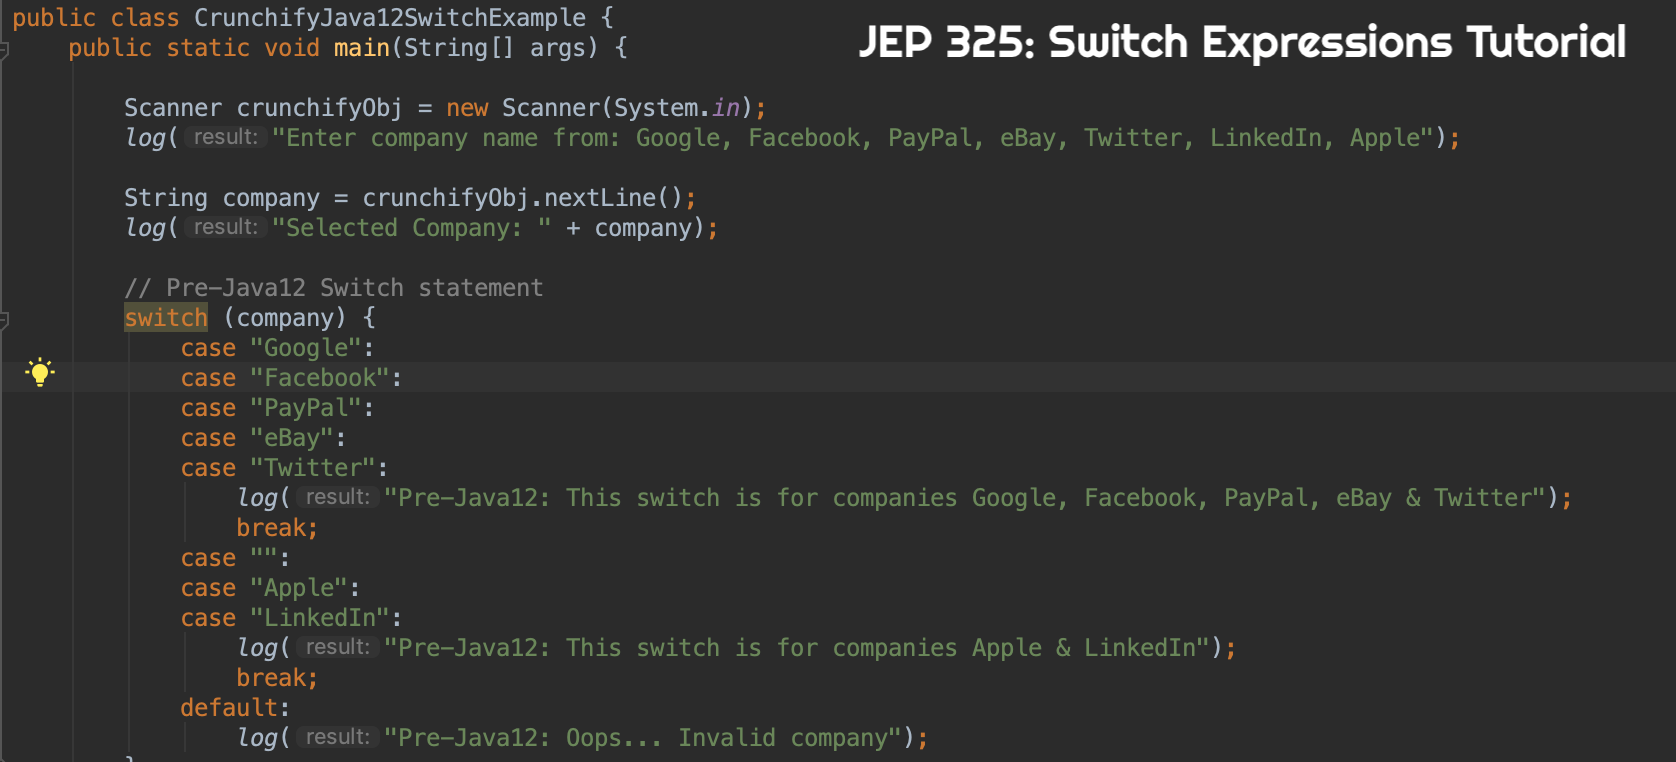 JEP 325 Switch Expressions Tutorial by Crunchify